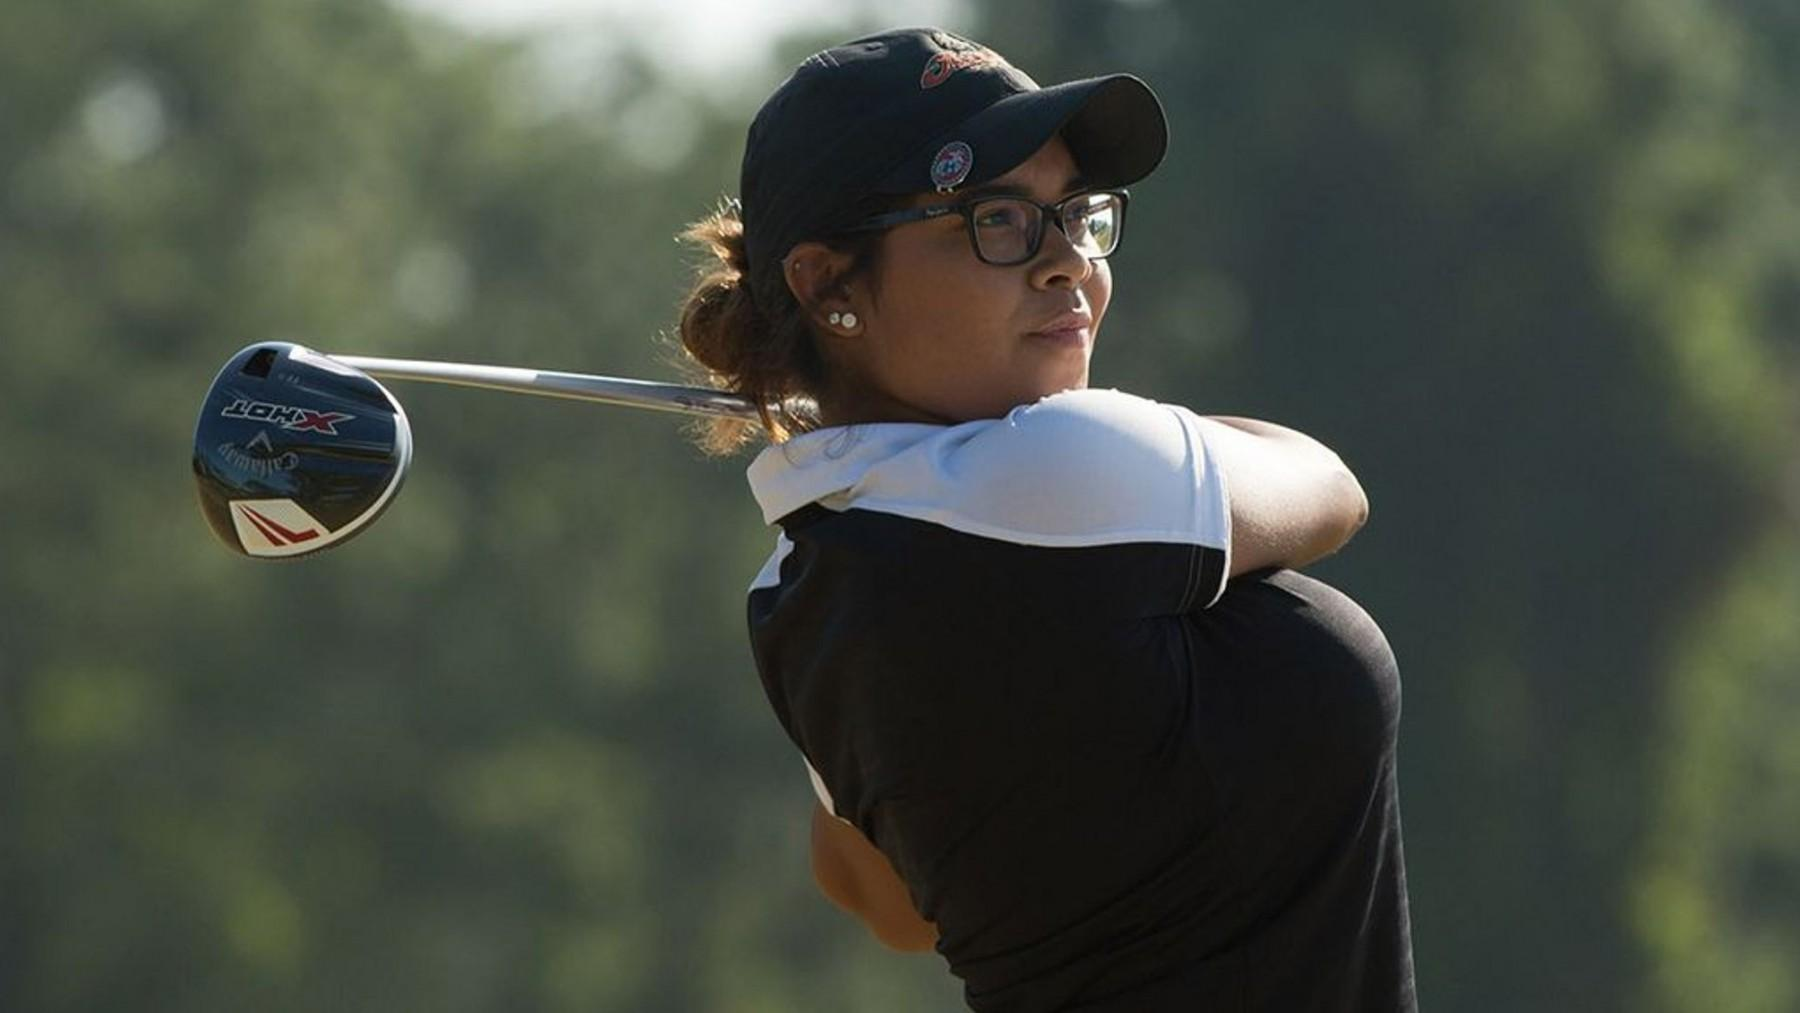 Jo Ellen Canales follows her tee shot Sunday at the 31st PGA Minority Championships. (Montana Pritchard/PGA of America)